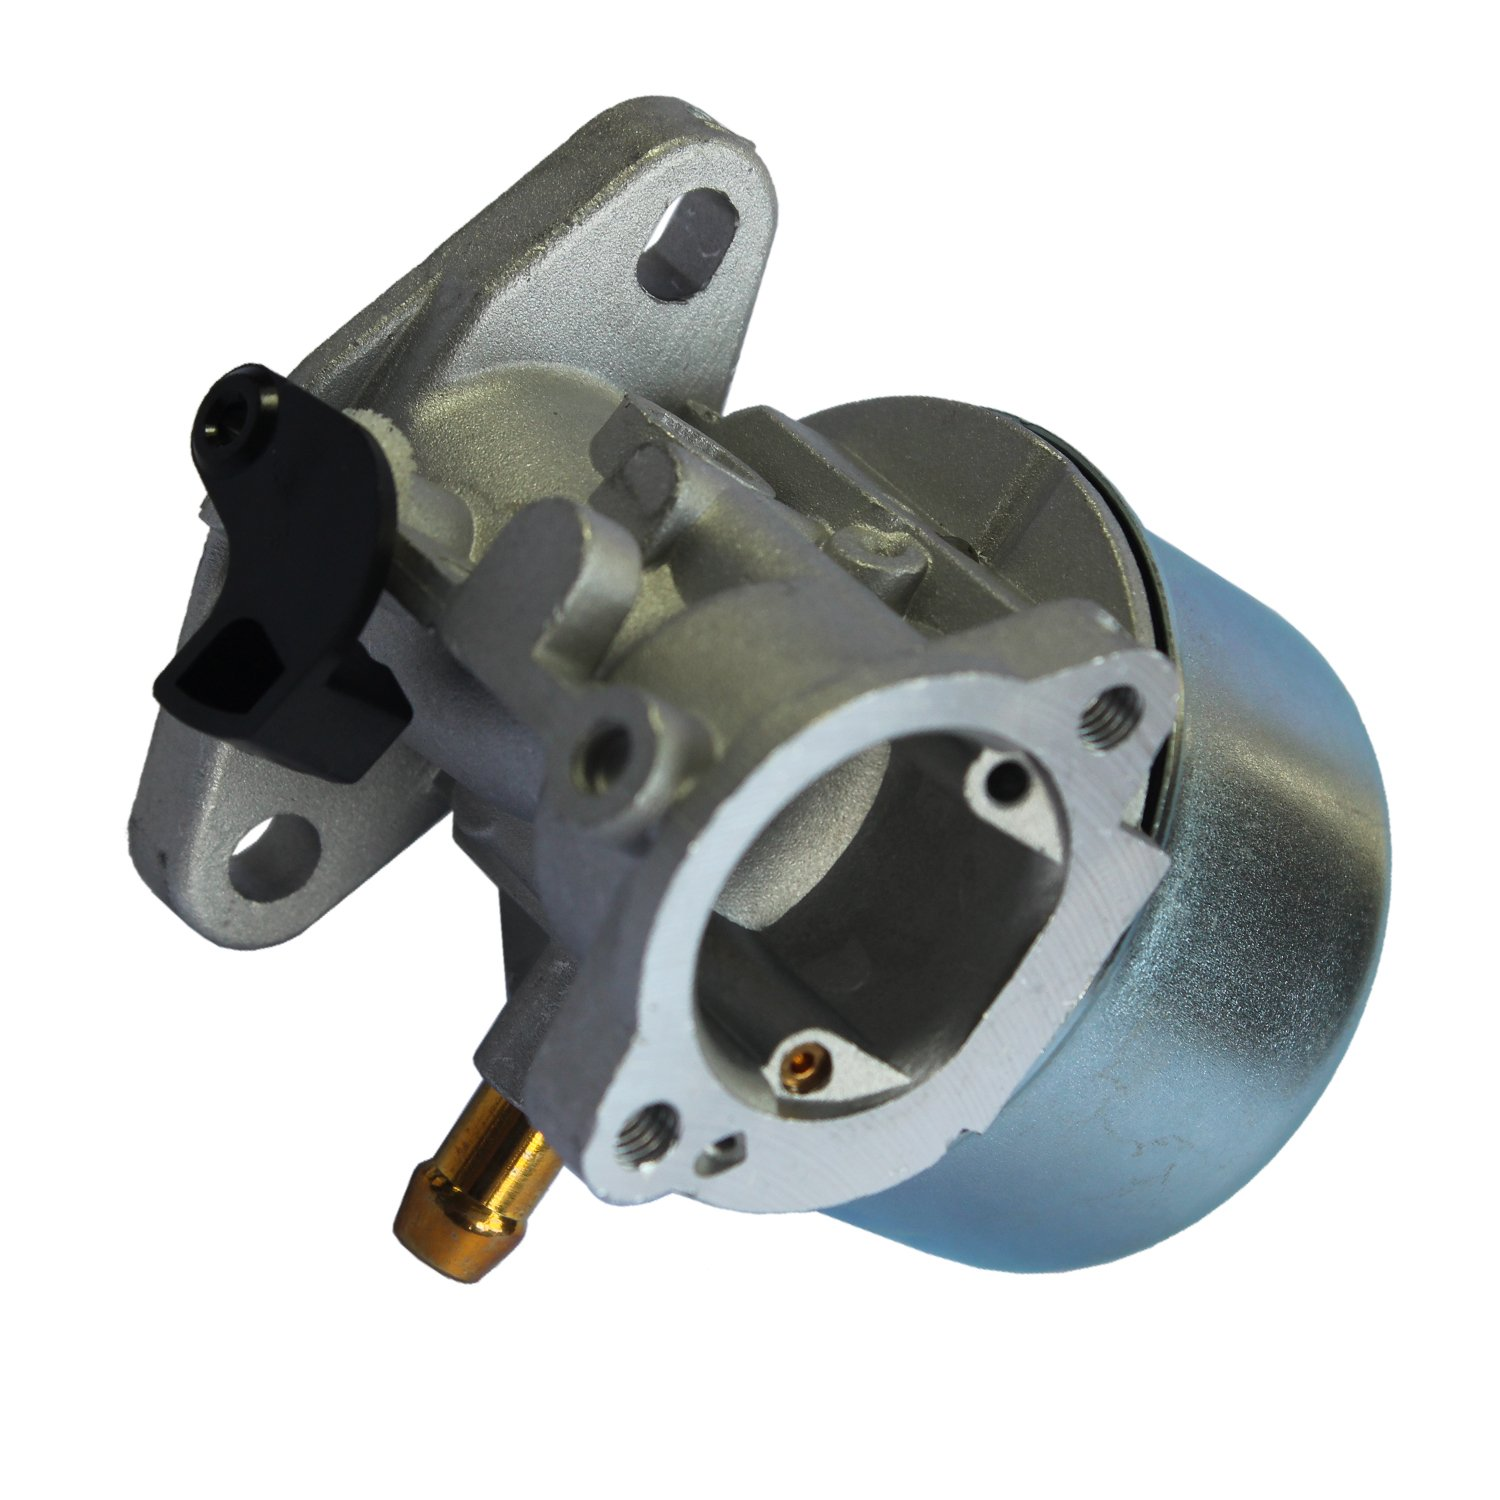 JDMSPEED New Carburetor w//Gasket /& O-Ring 799868 498254 497347 497314 498170 Carb 50-657 Carburetor Replacement For Briggs /& Stratton